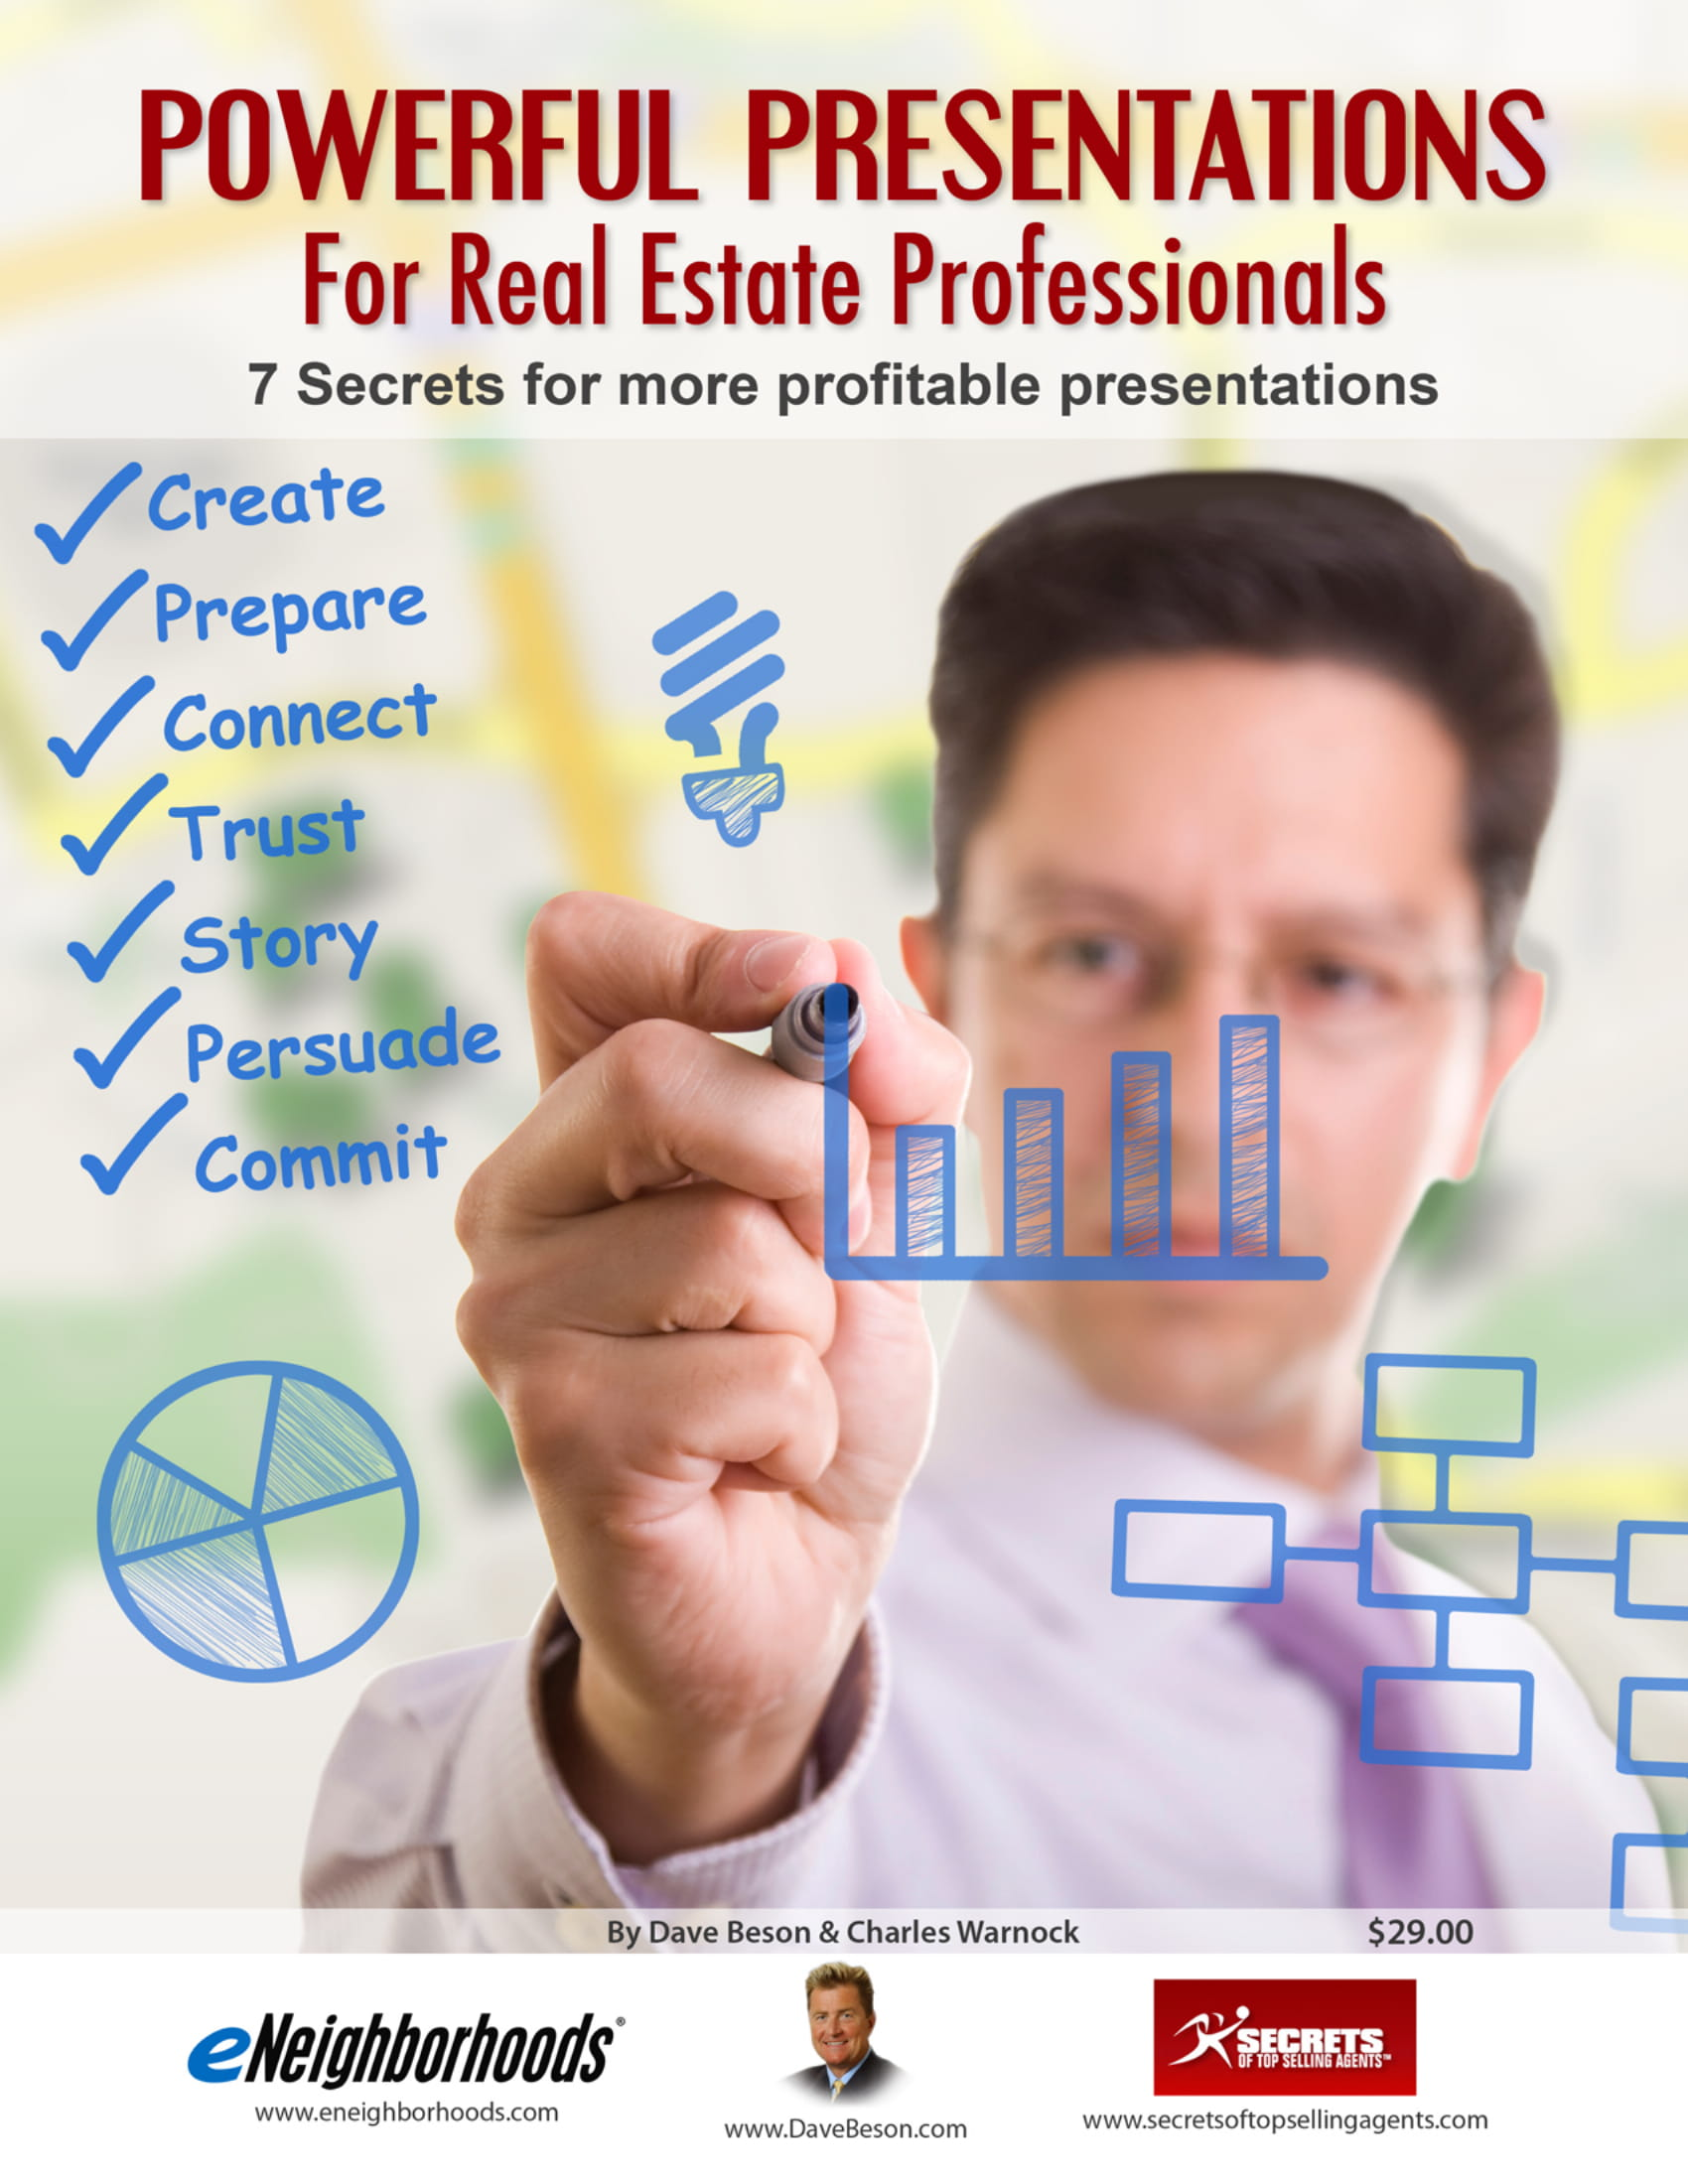 marketing plan powerful presentations for real estate professionals example 01